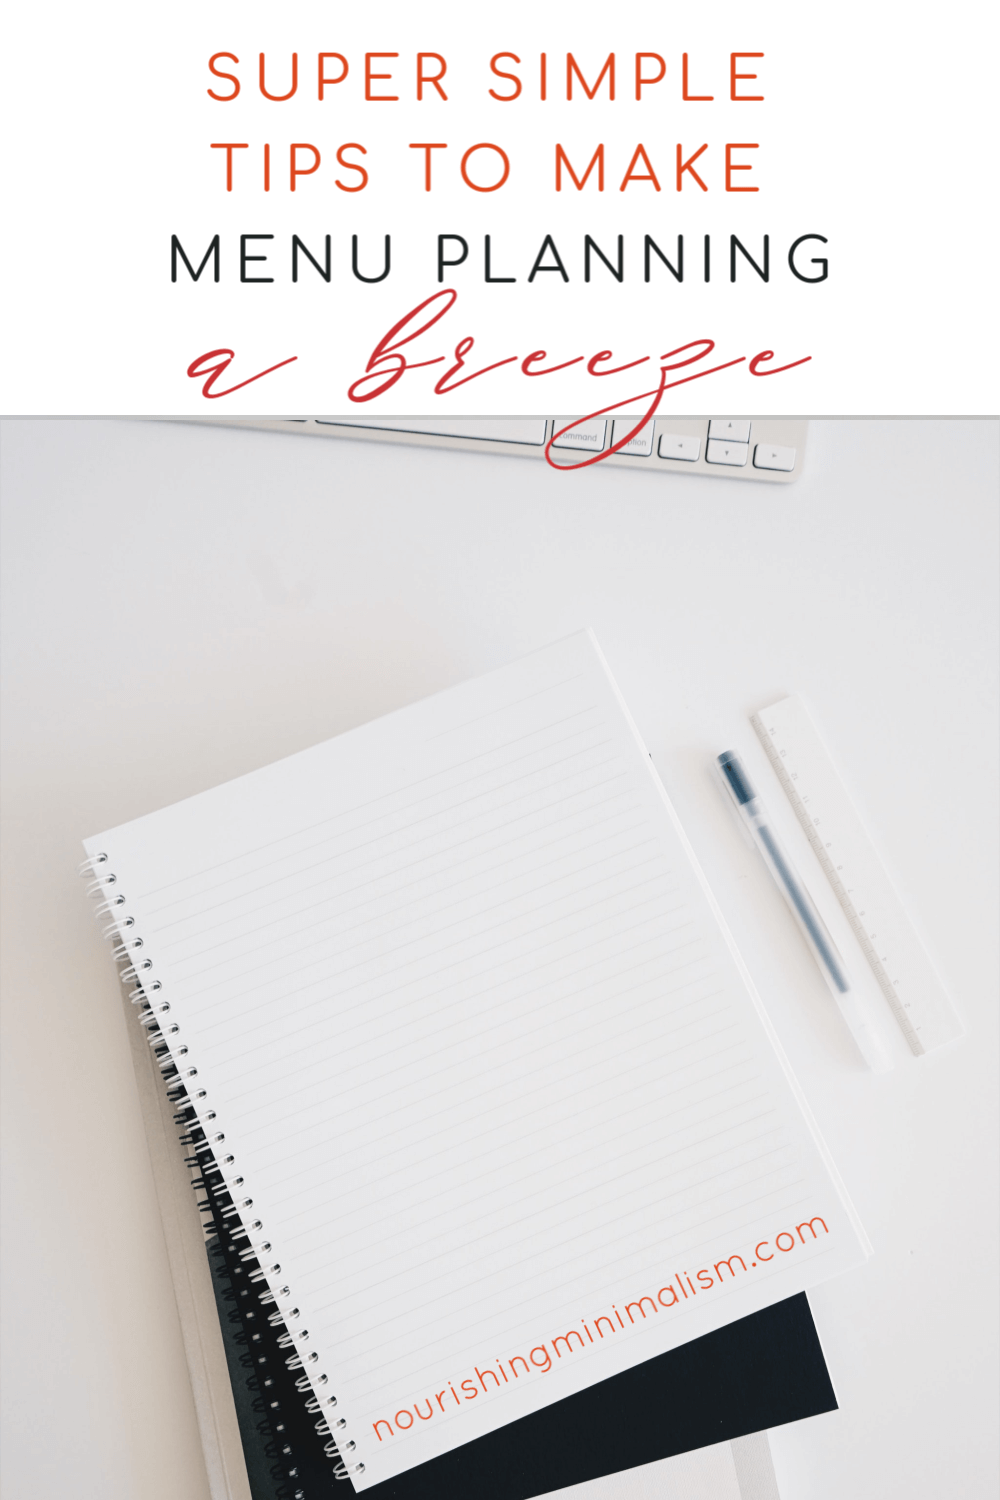 menu planning doesn't have to be a long drawn-out chore. Here are my tips to simplifying the process and make it easy on yourself.